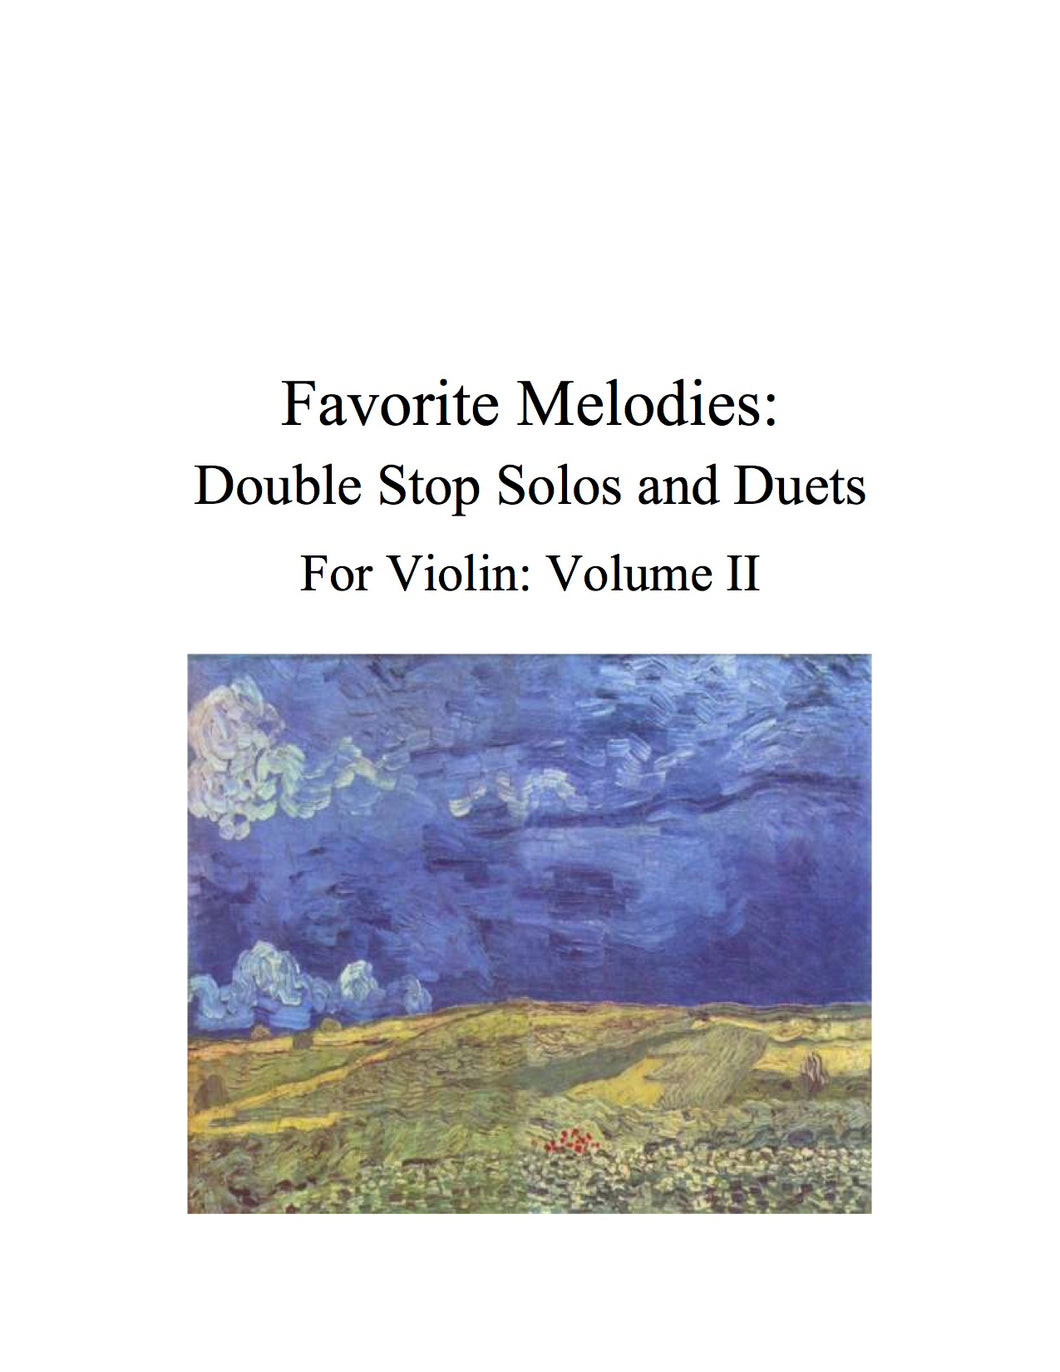 085 - Favorite Melodies II: Double Stop Solos and Duets for Violin (with 10 Suzuki Bk. I pieces)